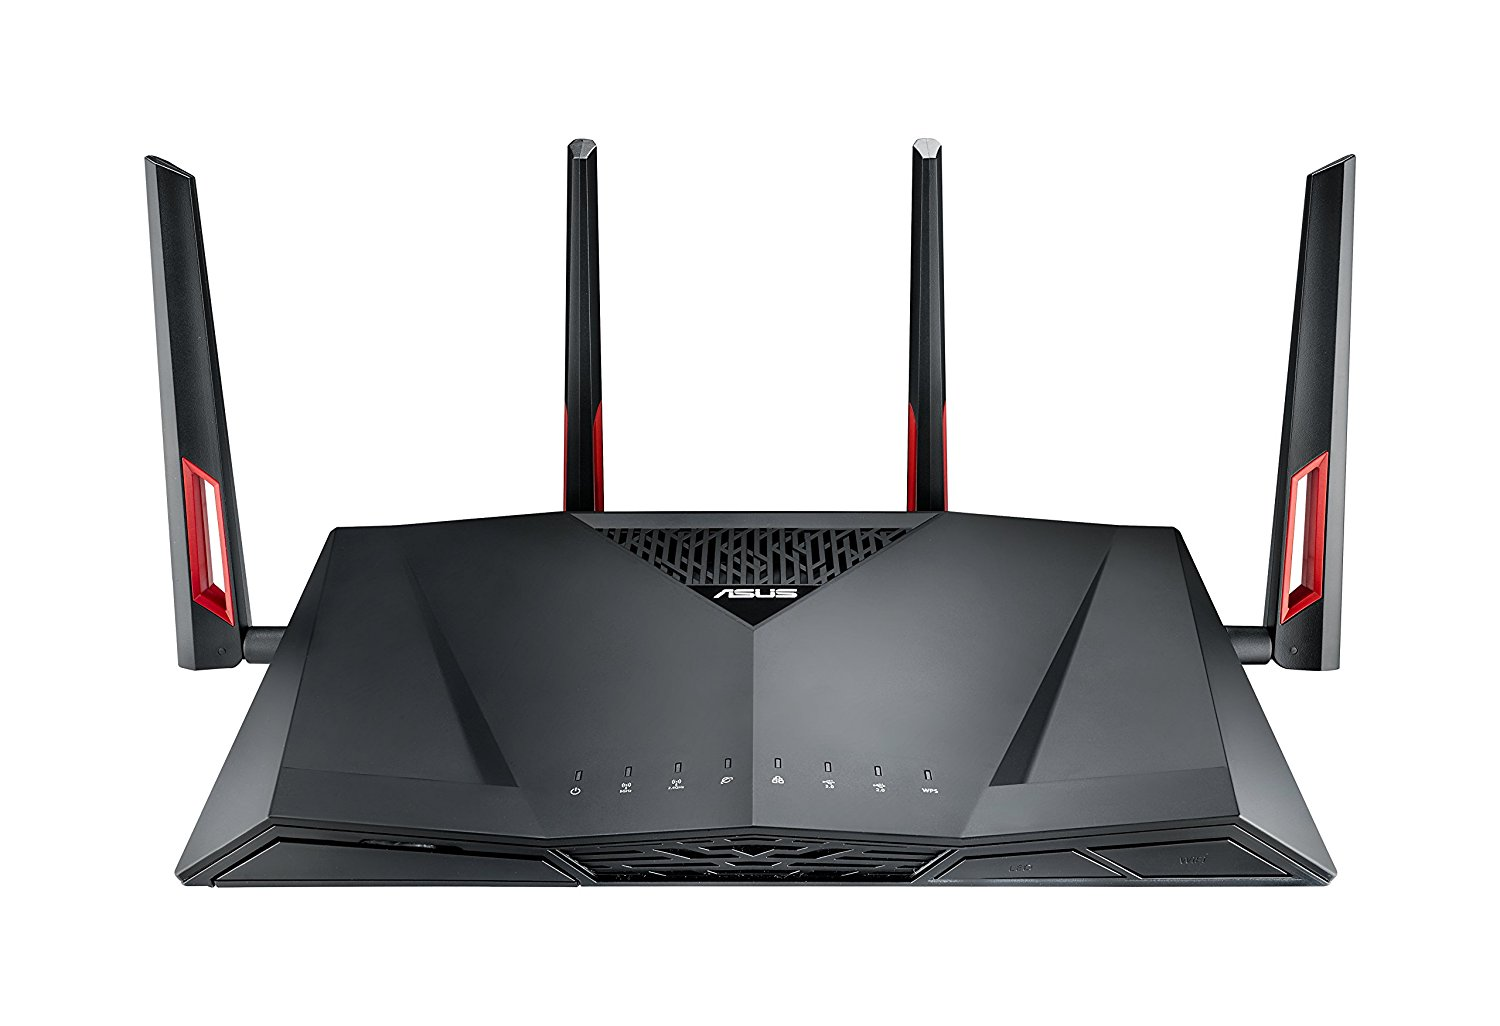 10 Best Wireless Routers for Gaming and Home Use